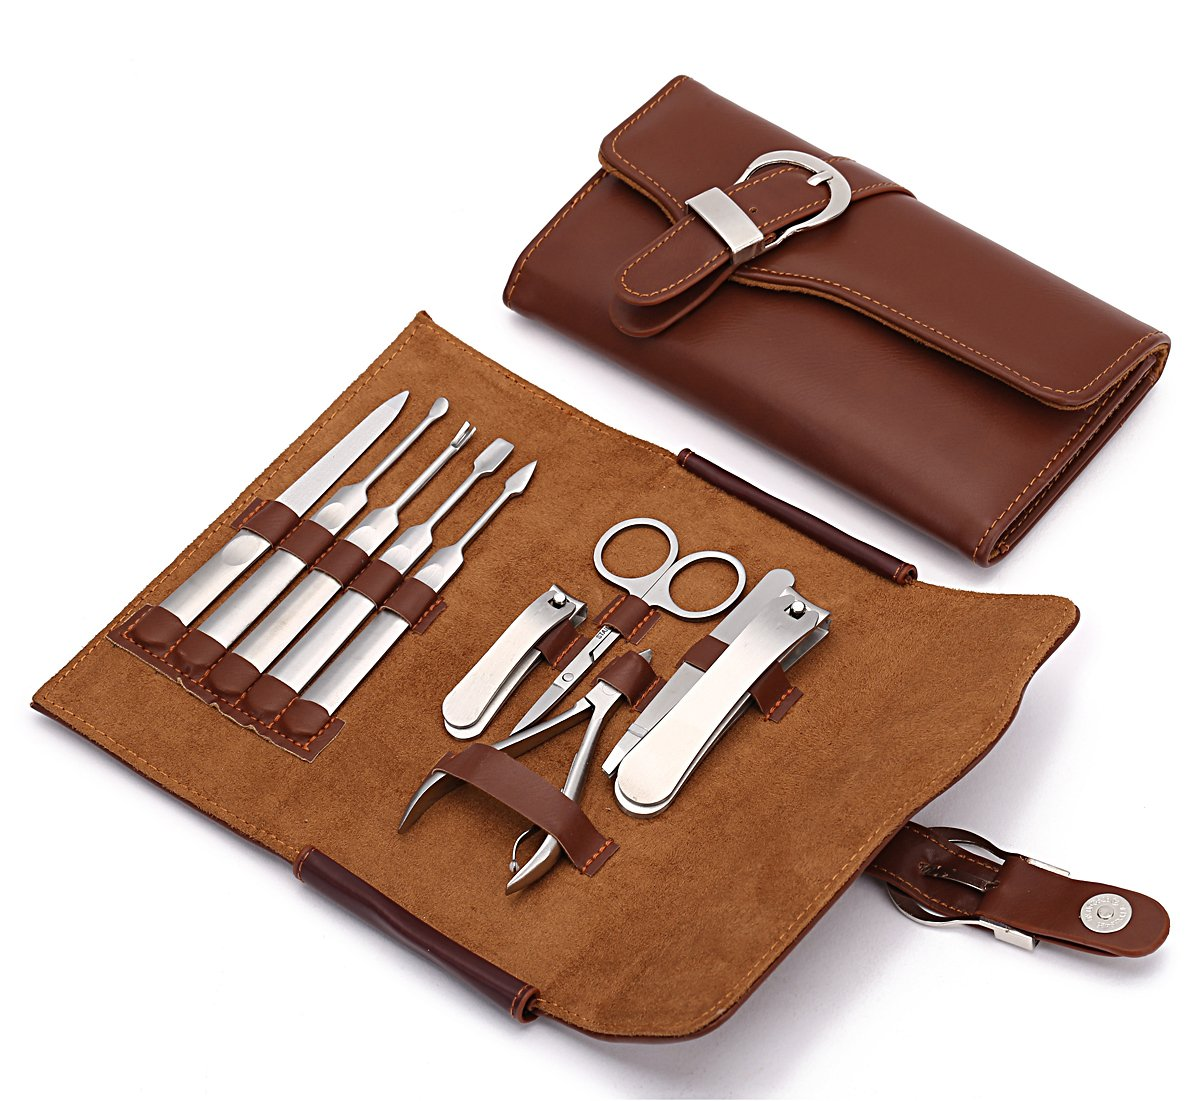 Manicure Set Nail Clipper Set of 10pcs With Leather Case - Professional Stainless Steel Grooming Kit Pedicure Set for Travel (Brown)